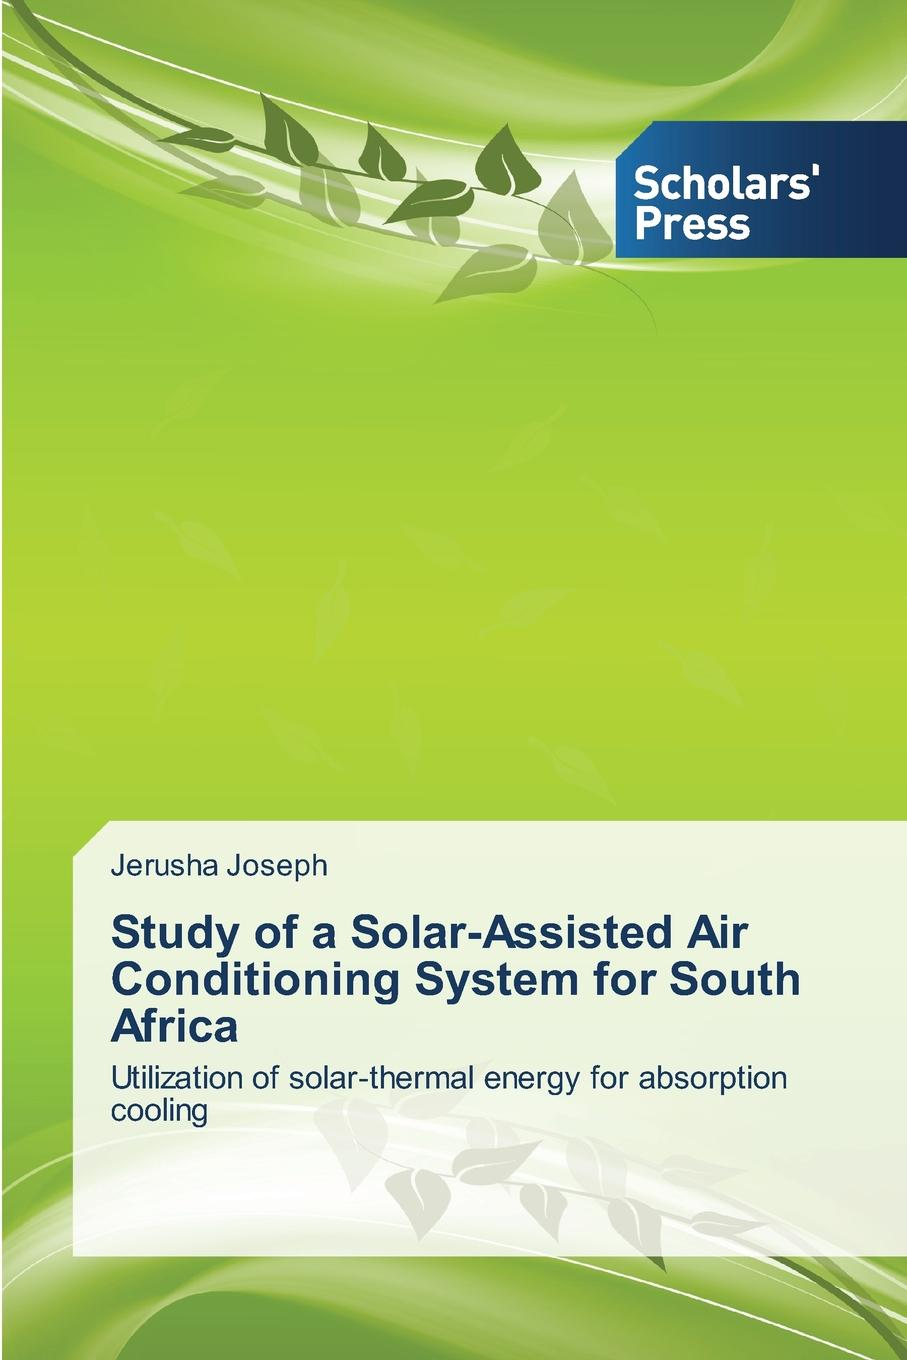 Joseph Jerusha Study of a Solar-Assisted Air Conditioning System for South Africa debajyoti bose krishnam goyal vidushi bhardwaj design and development of a solar parabolic concentrator and integration with a solar desalination system